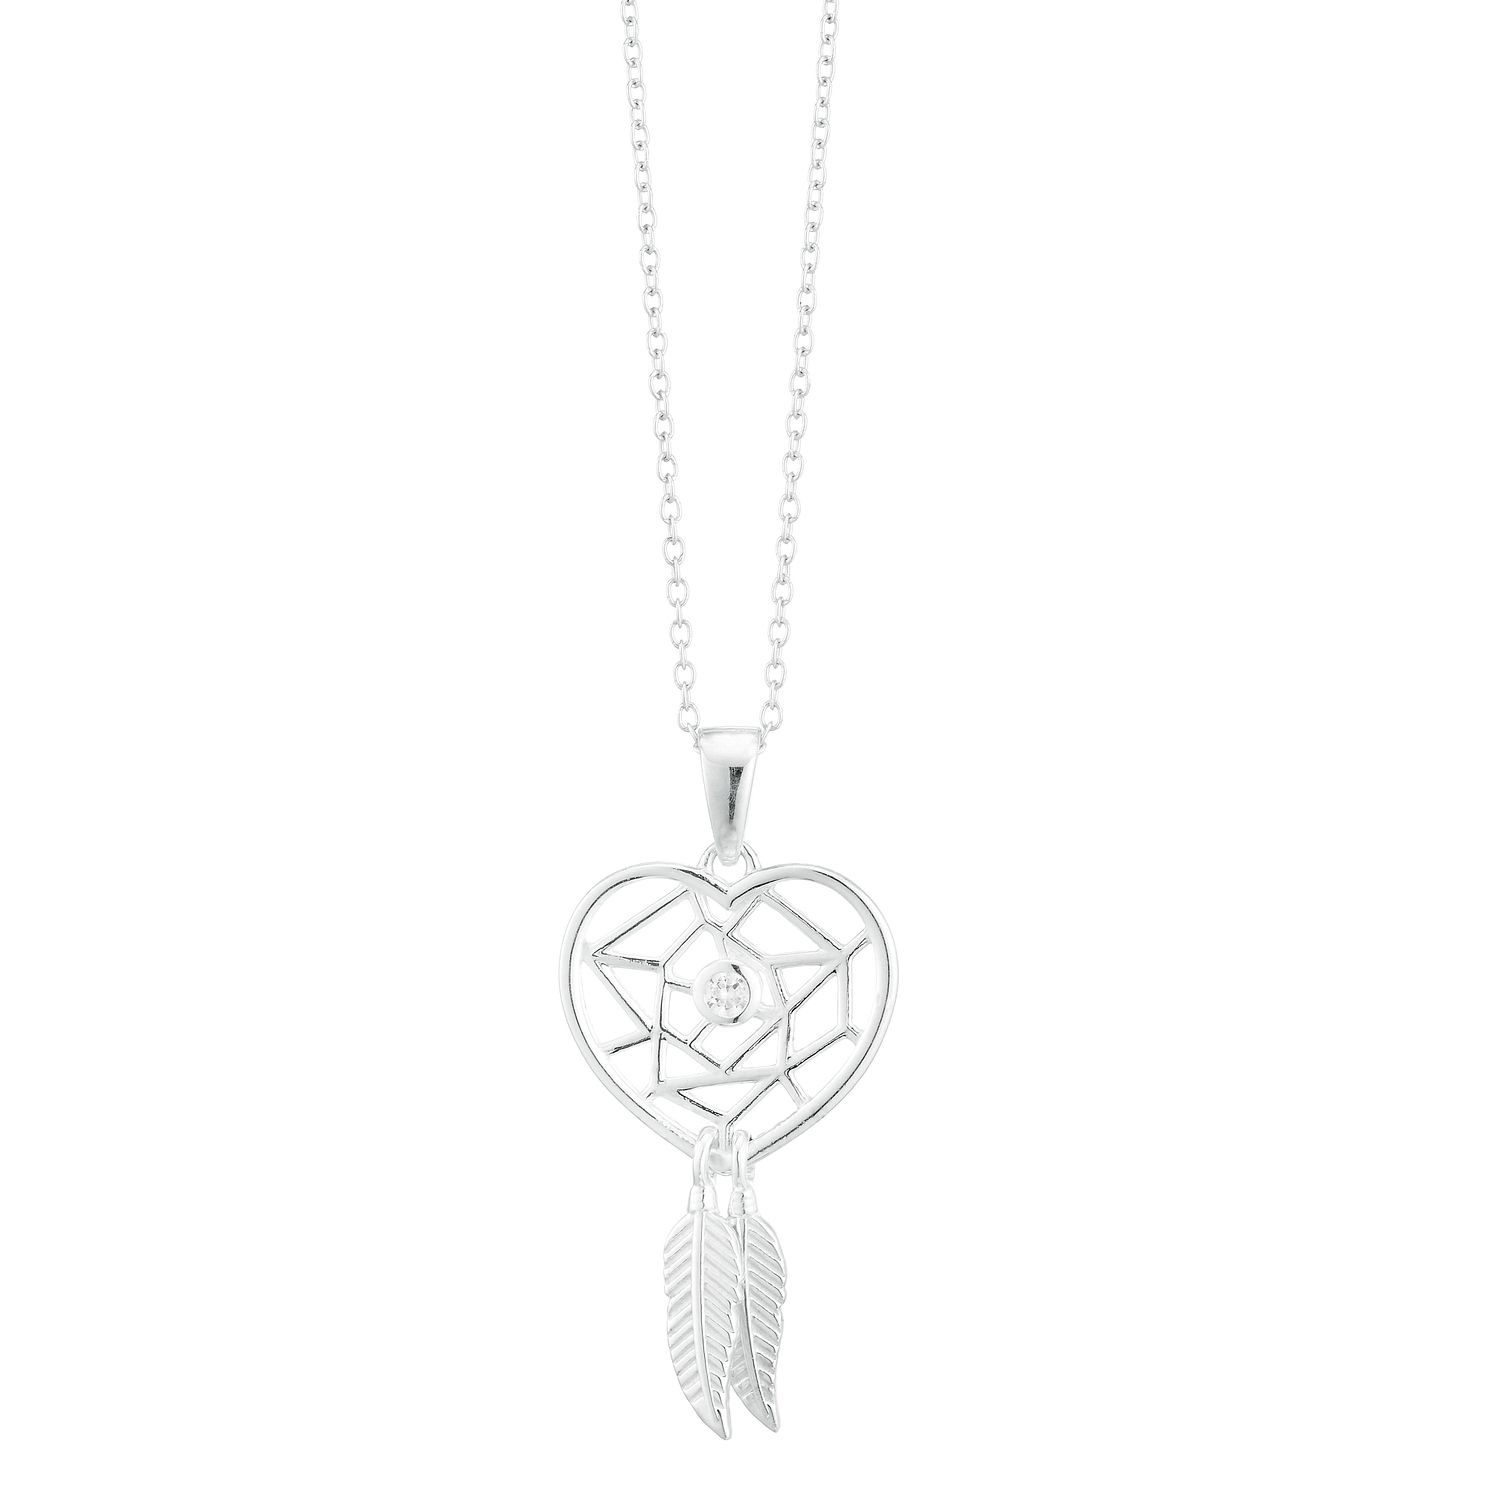 Sterling Silver Cubic Zirconia Dreamcatcher Pendant - Product number 3959716